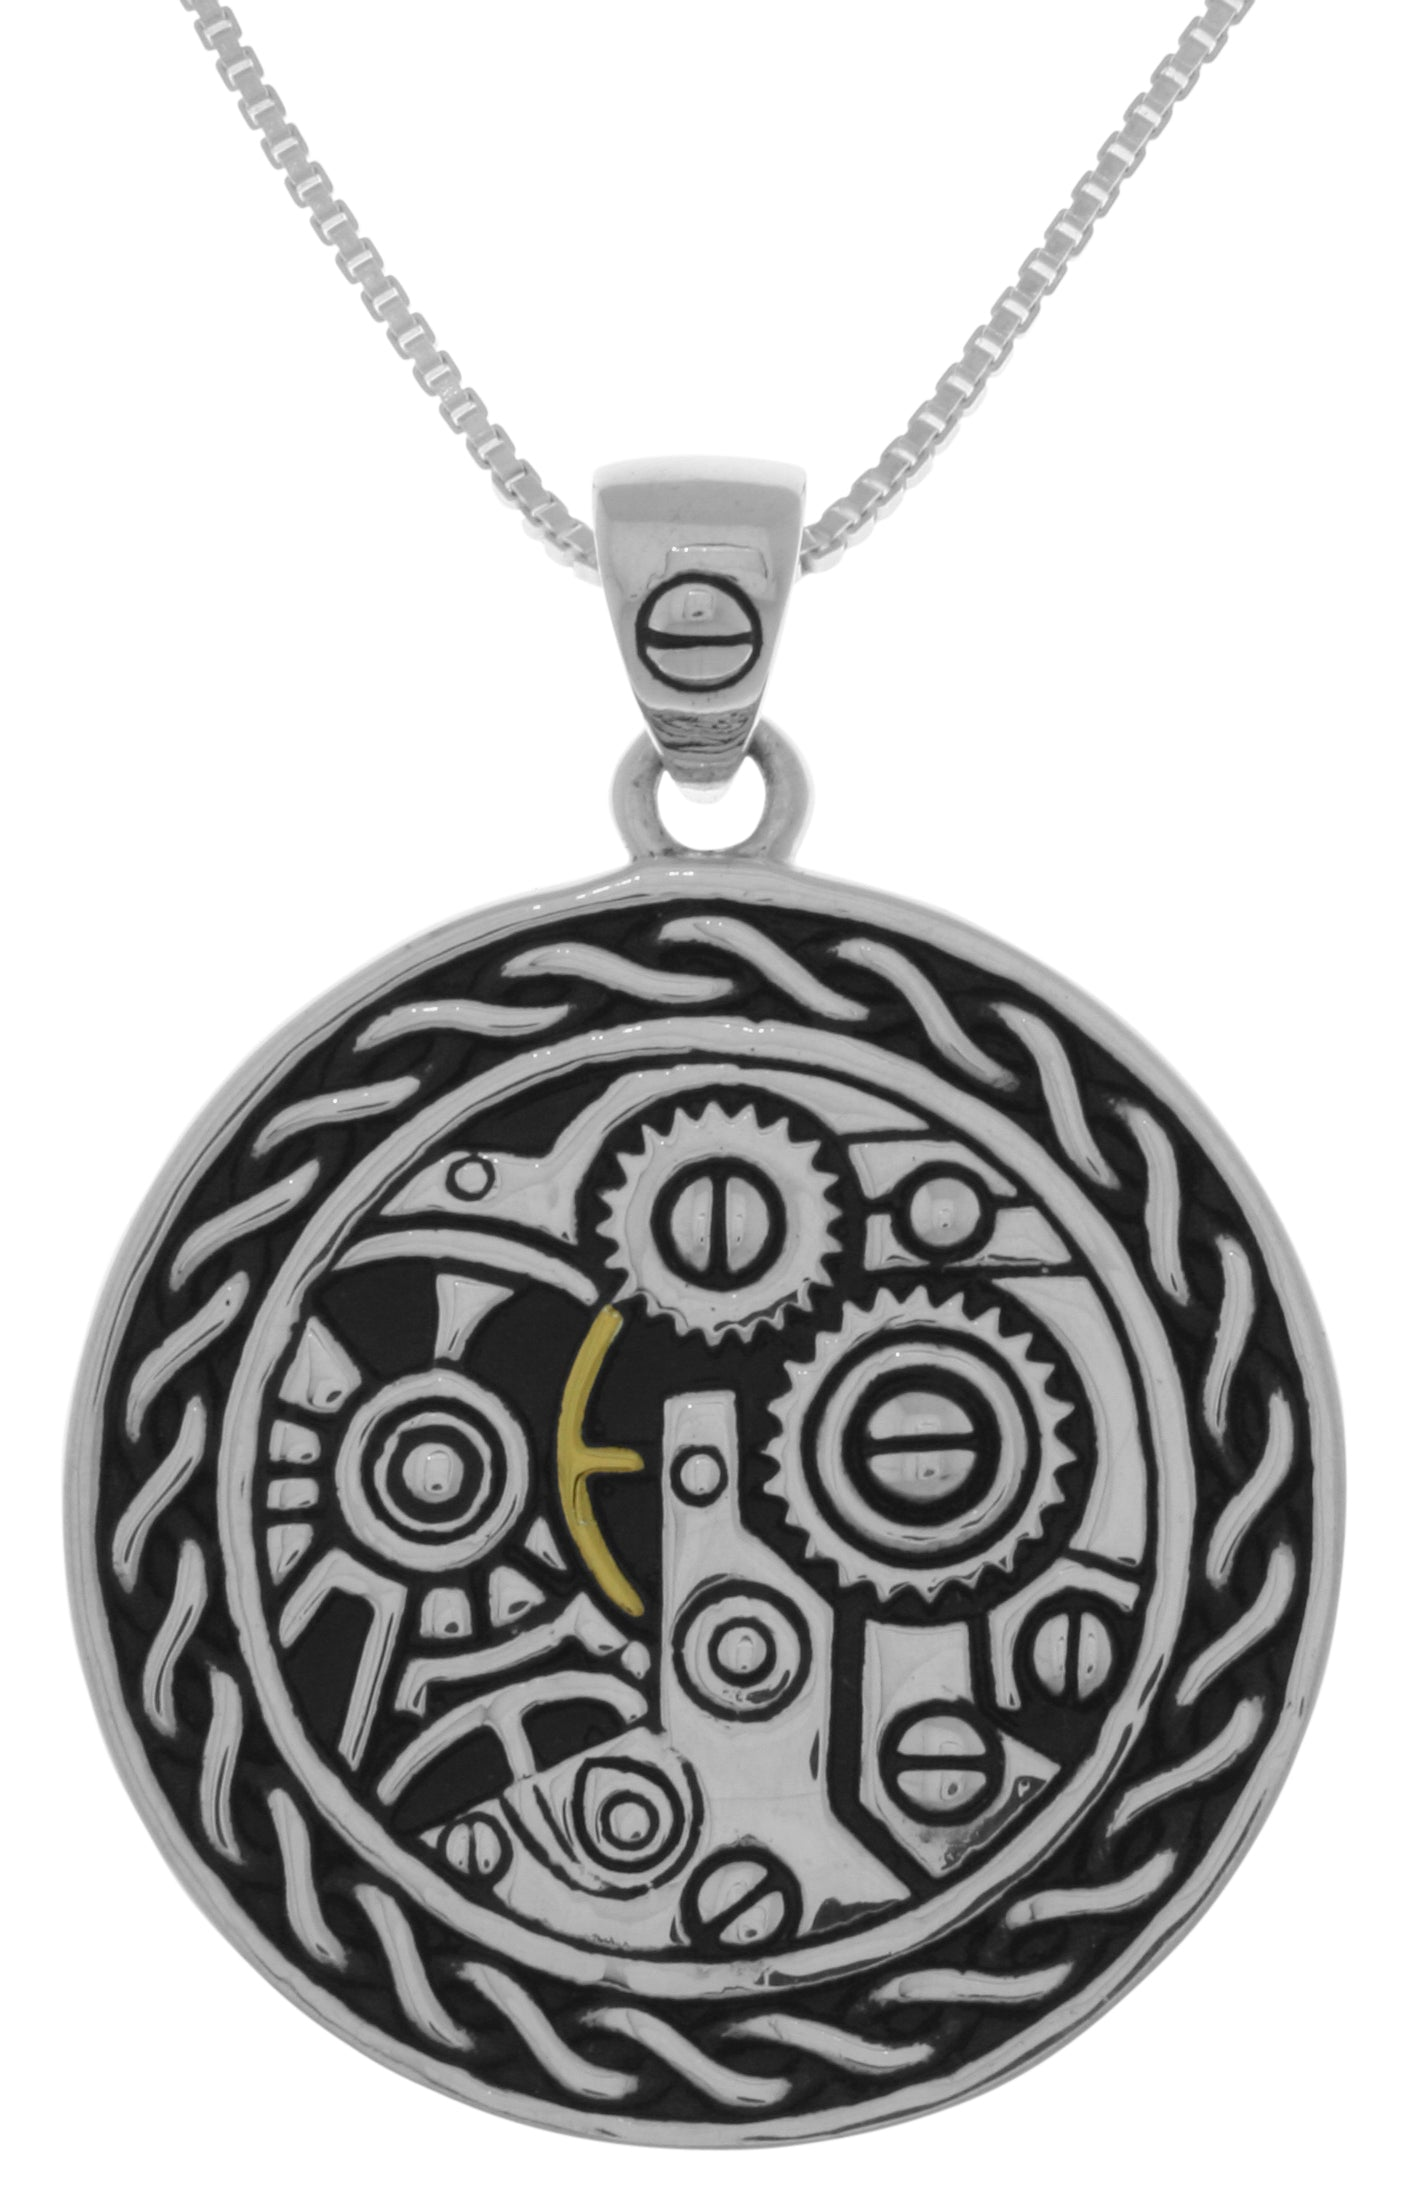 Jewelry Trends Sterling Silver Celtic Steampunk Gears Pendant on 18 Inch Box Chain Necklace